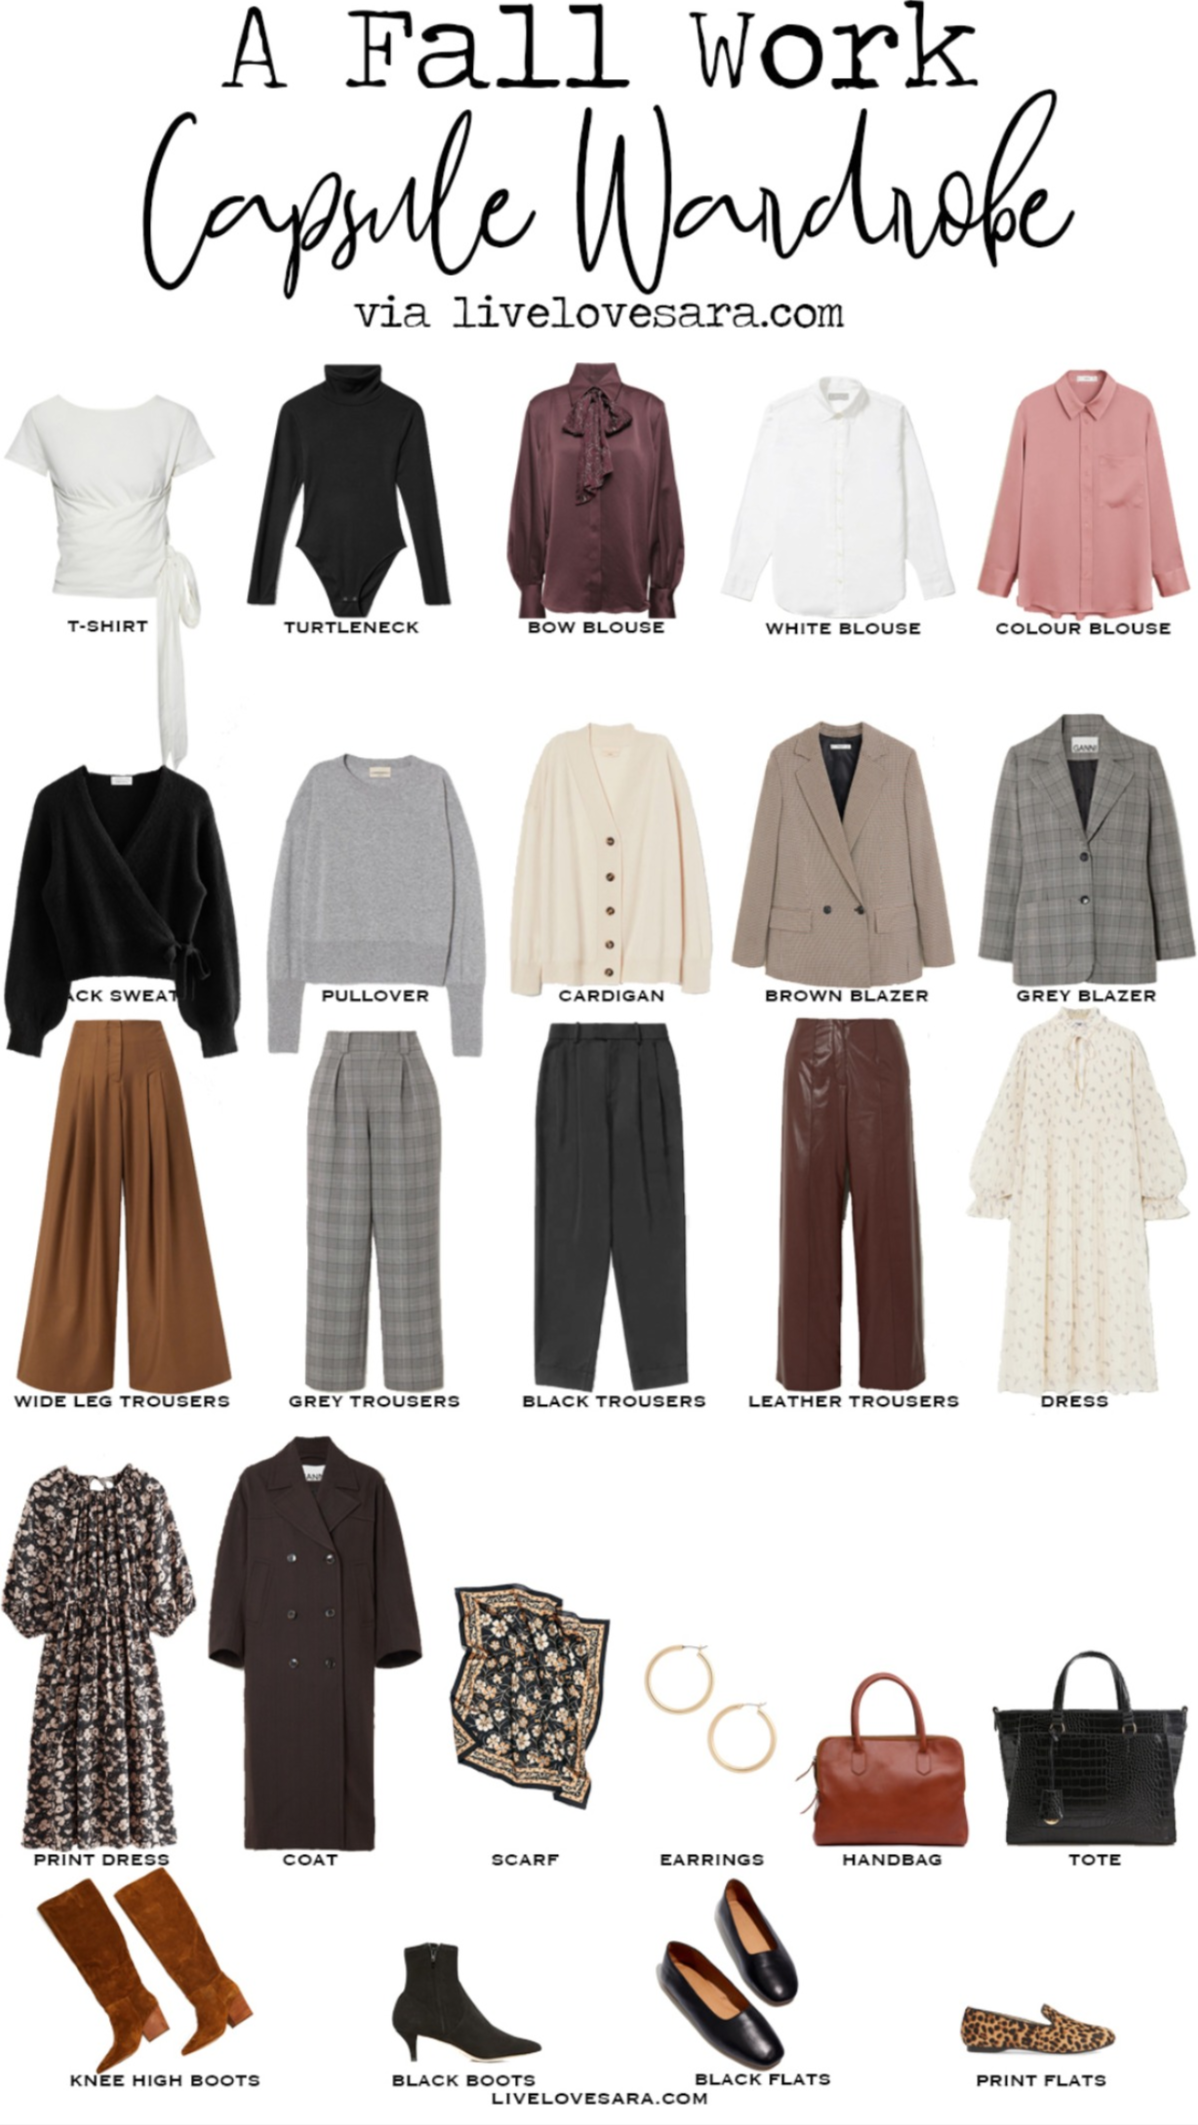 How to Build a Fall Work Capsule Wardrobe